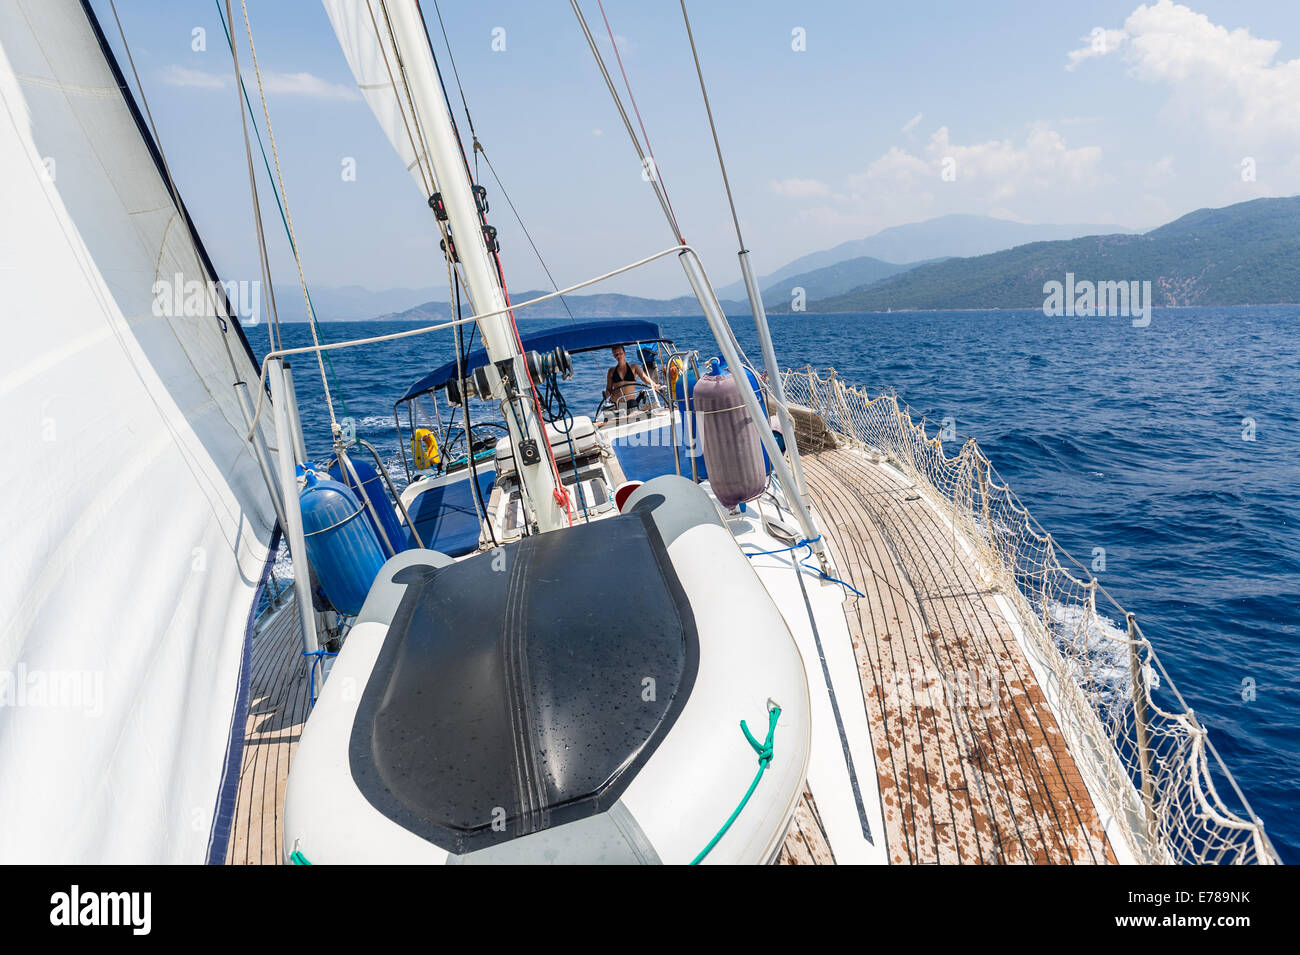 Sailing cruising yacht with women on the helm - Stock Image